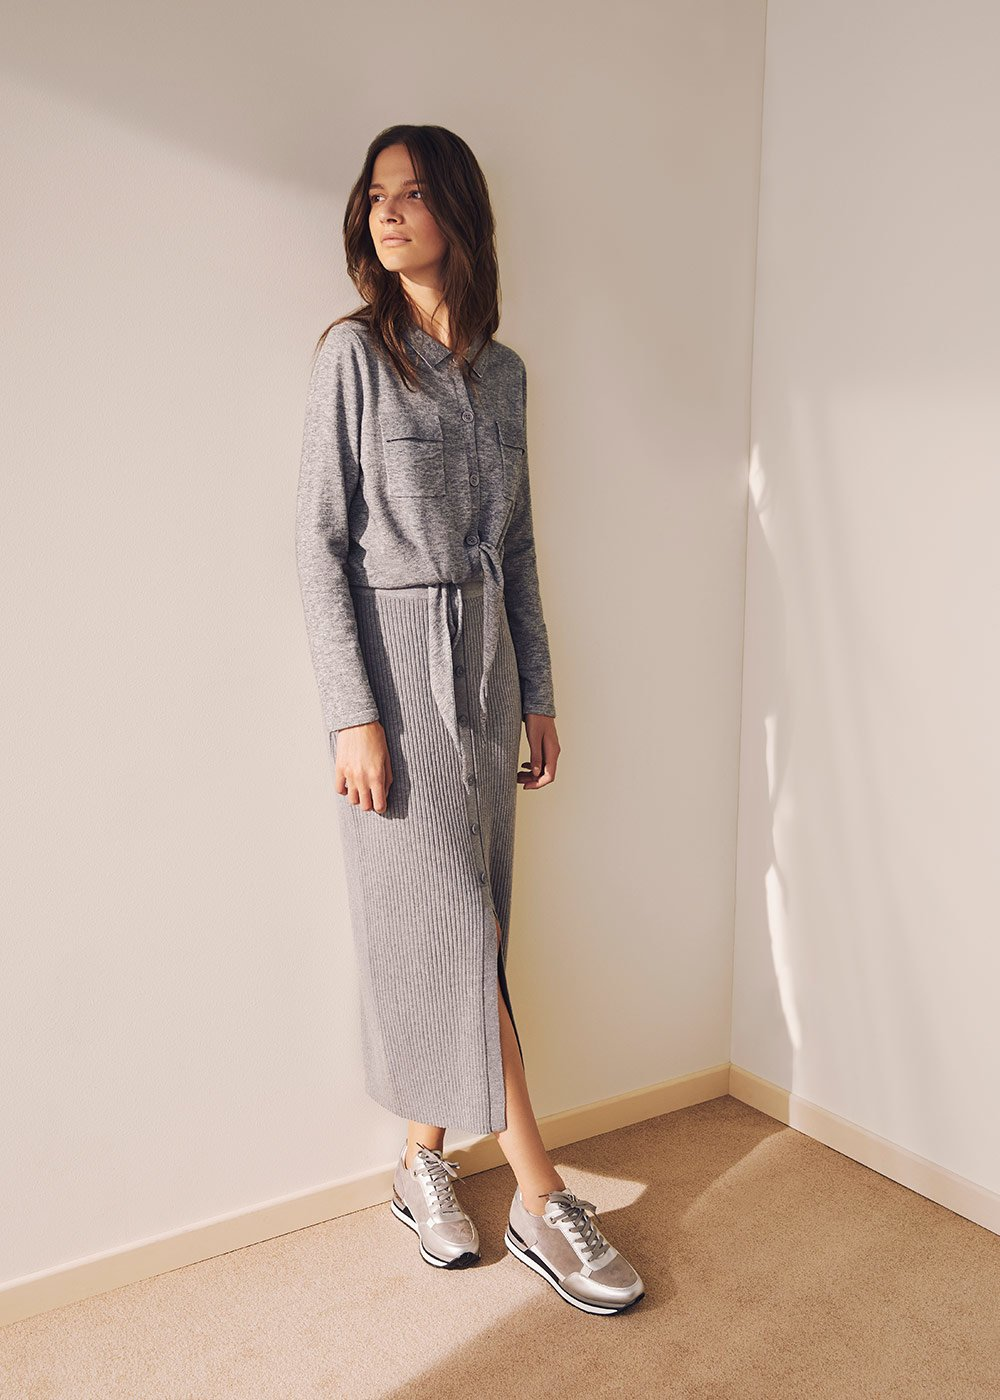 Sorey cardigan with knot at the bottom - Grey Melange - Woman